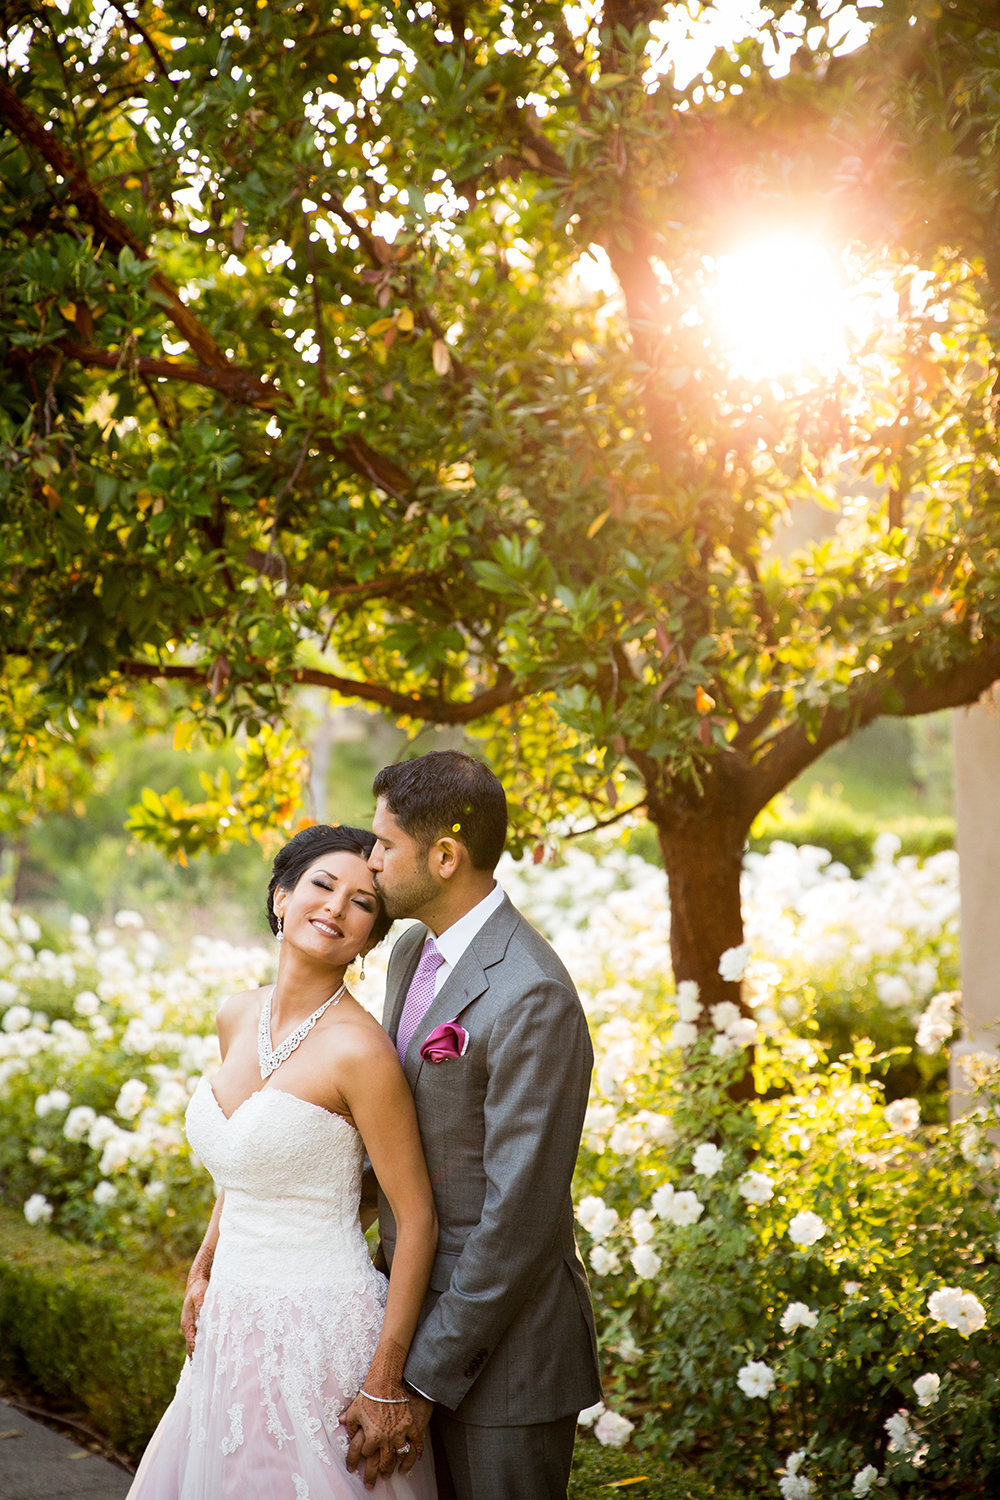 Breathtaking Sunset Wedding Portrait of Indian Couple at Rancho Bernardo Inn